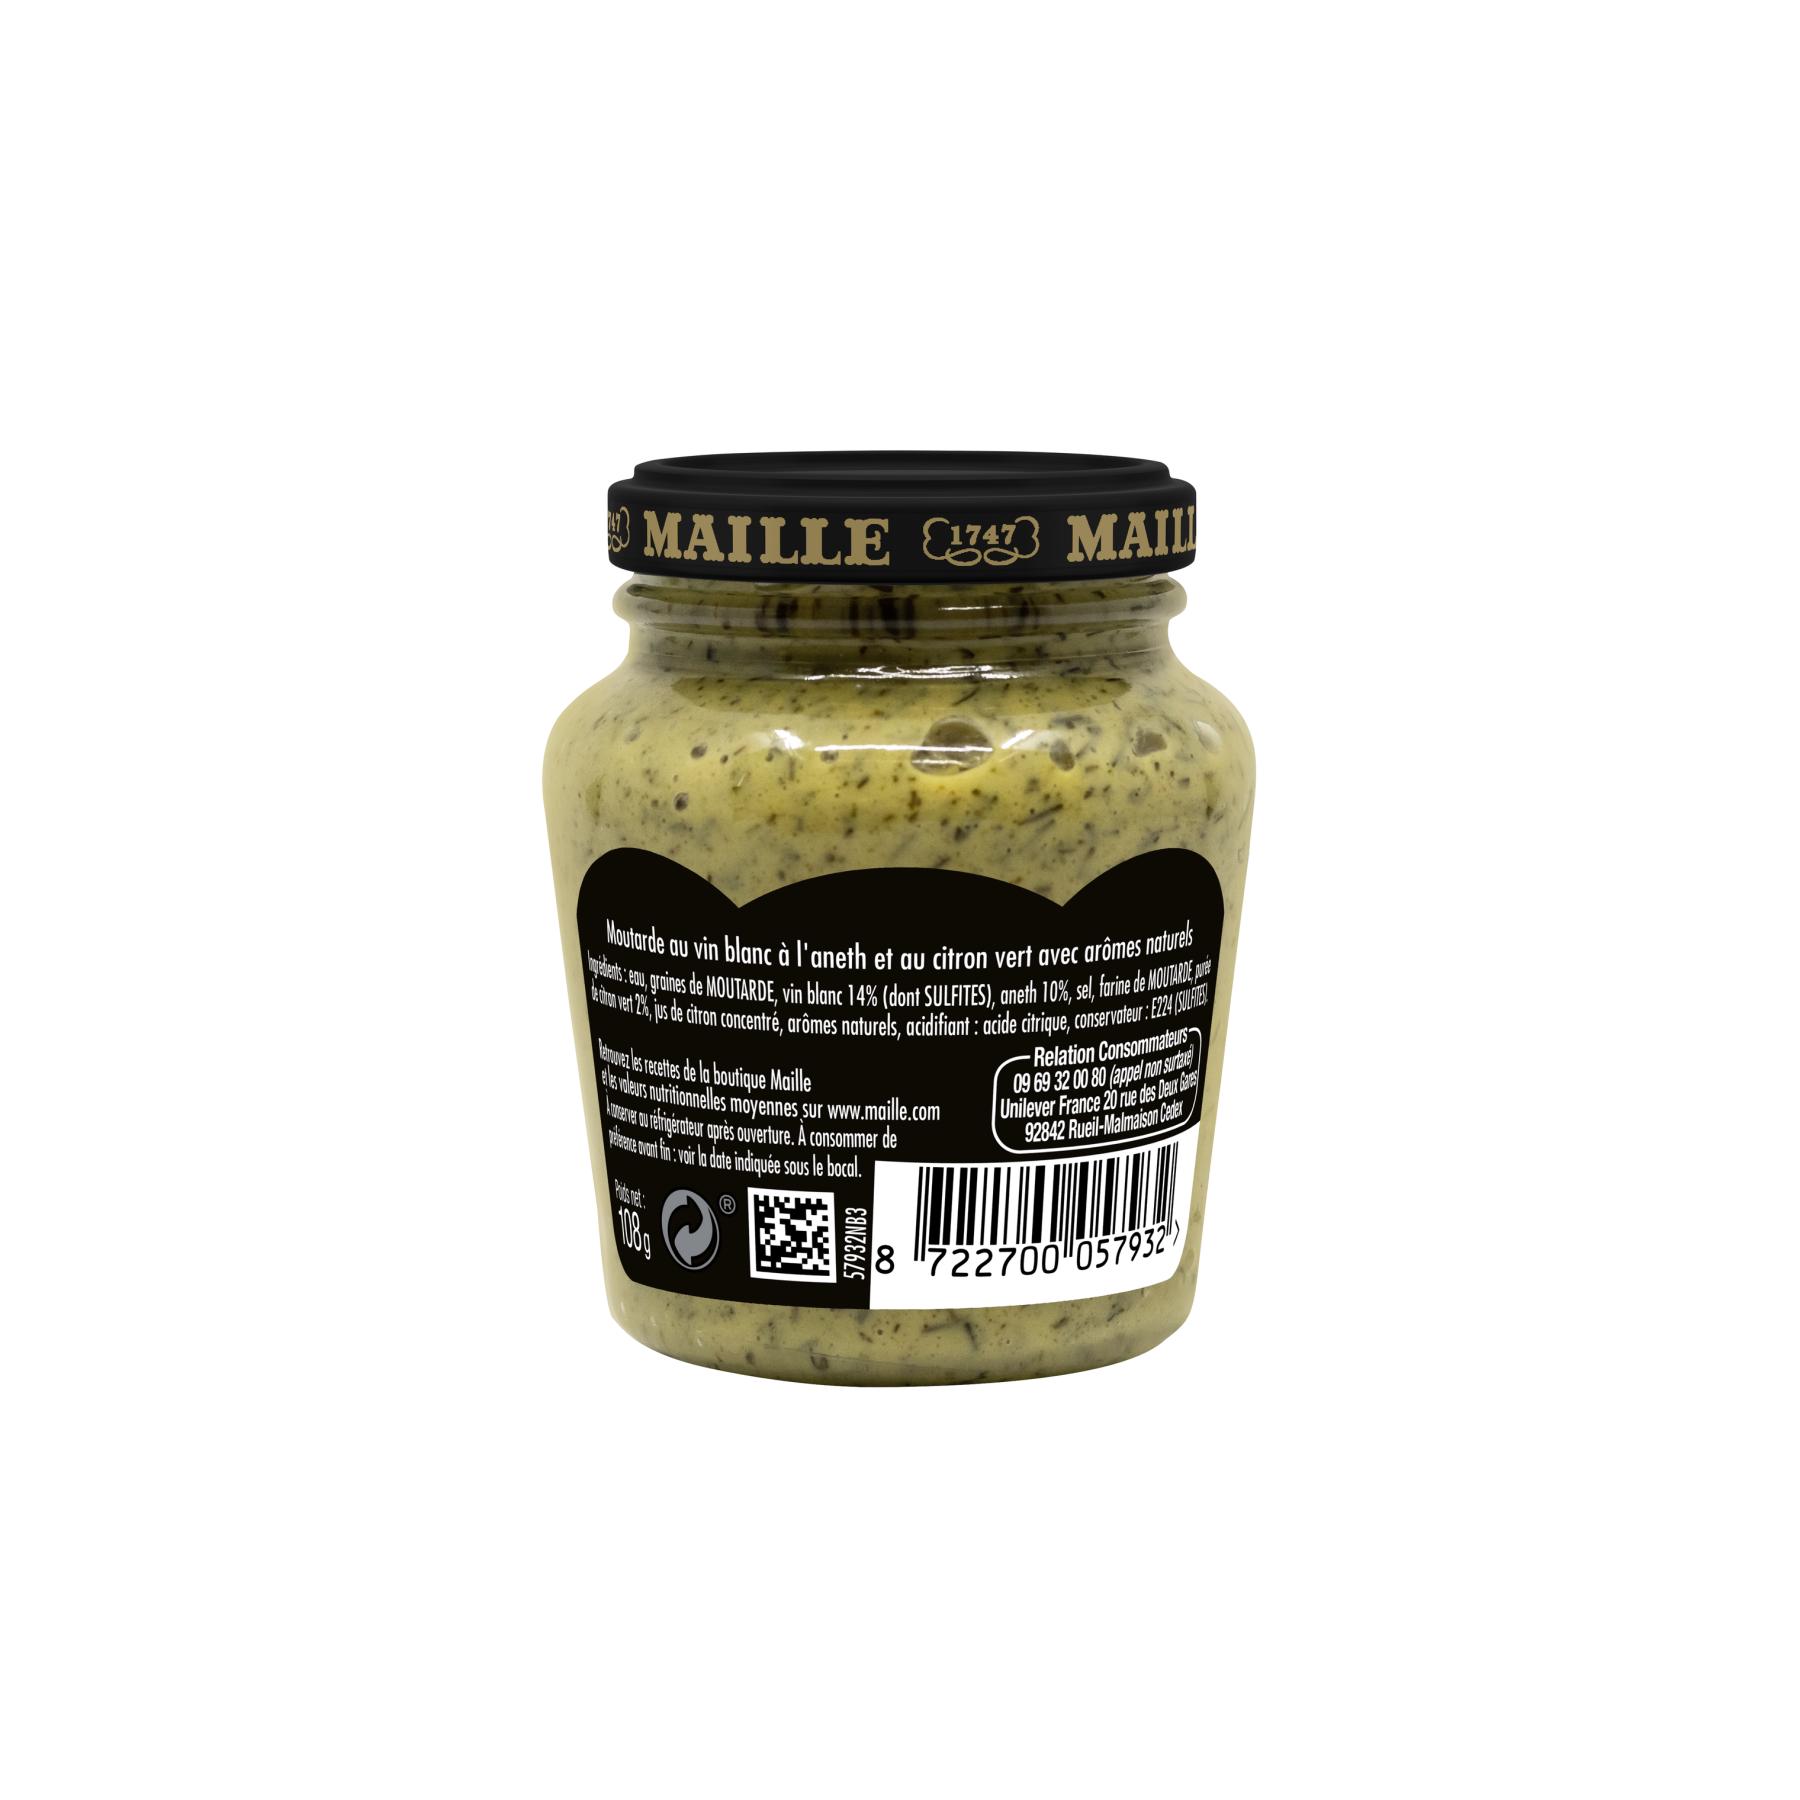 Maille - Moutarde au vin blanc, aneth et citron vert, 108 g, backend